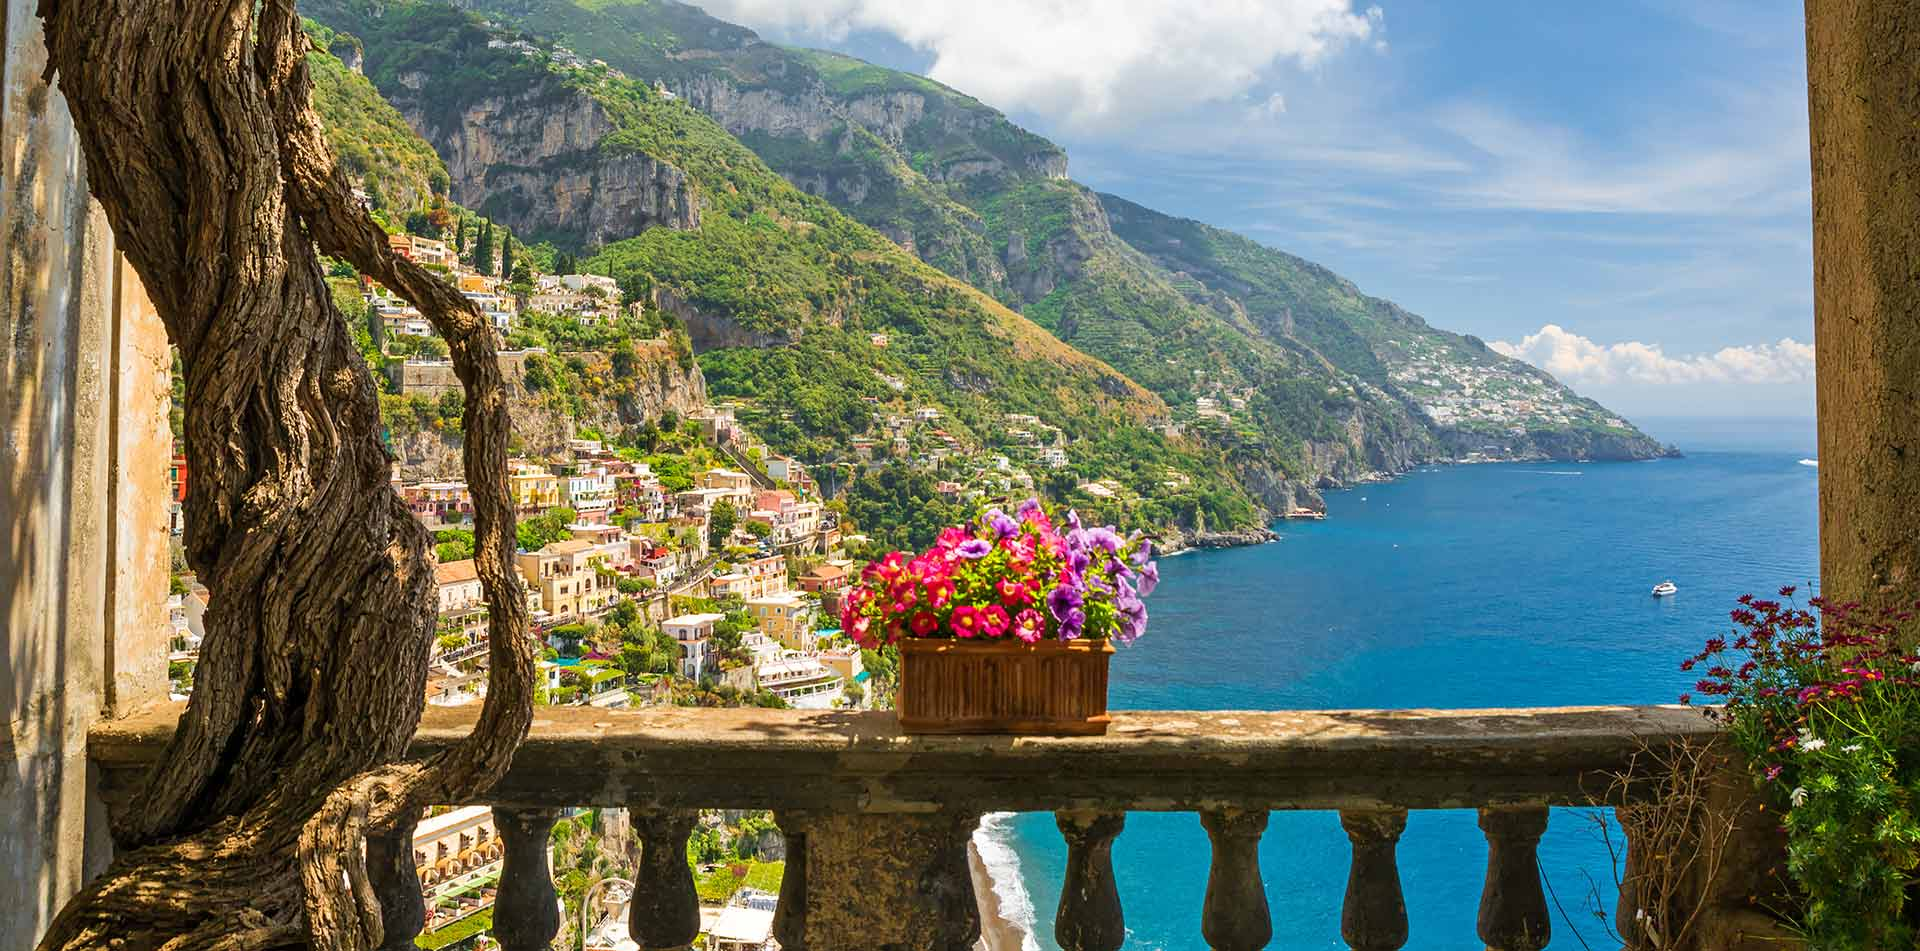 Europe Italy Sorrento Amalfi Coast beautiful balcony with flowers overlooking ocean - luxury vacation destinations